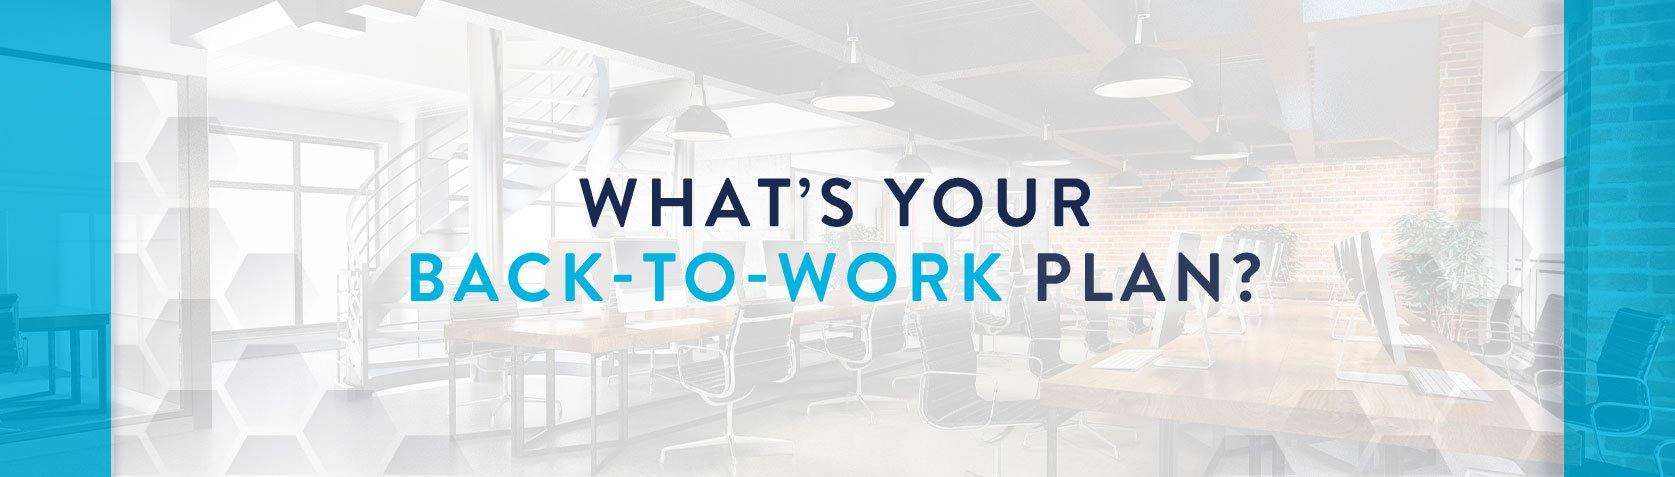 What's your back-to-work plan?